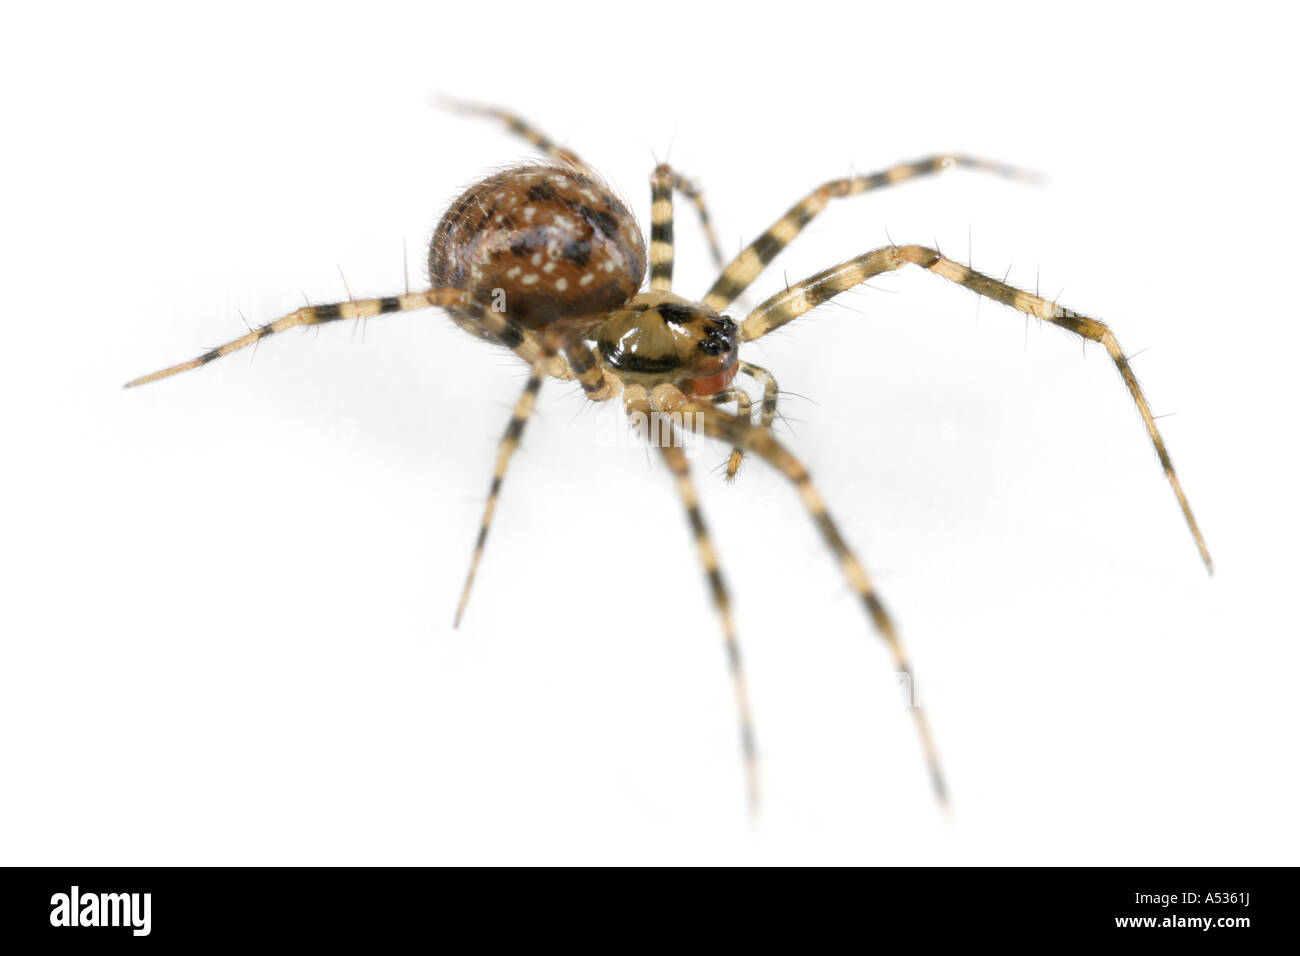 A Labulla thoracica spider, family Linyphiidae, on white background Stock Photo